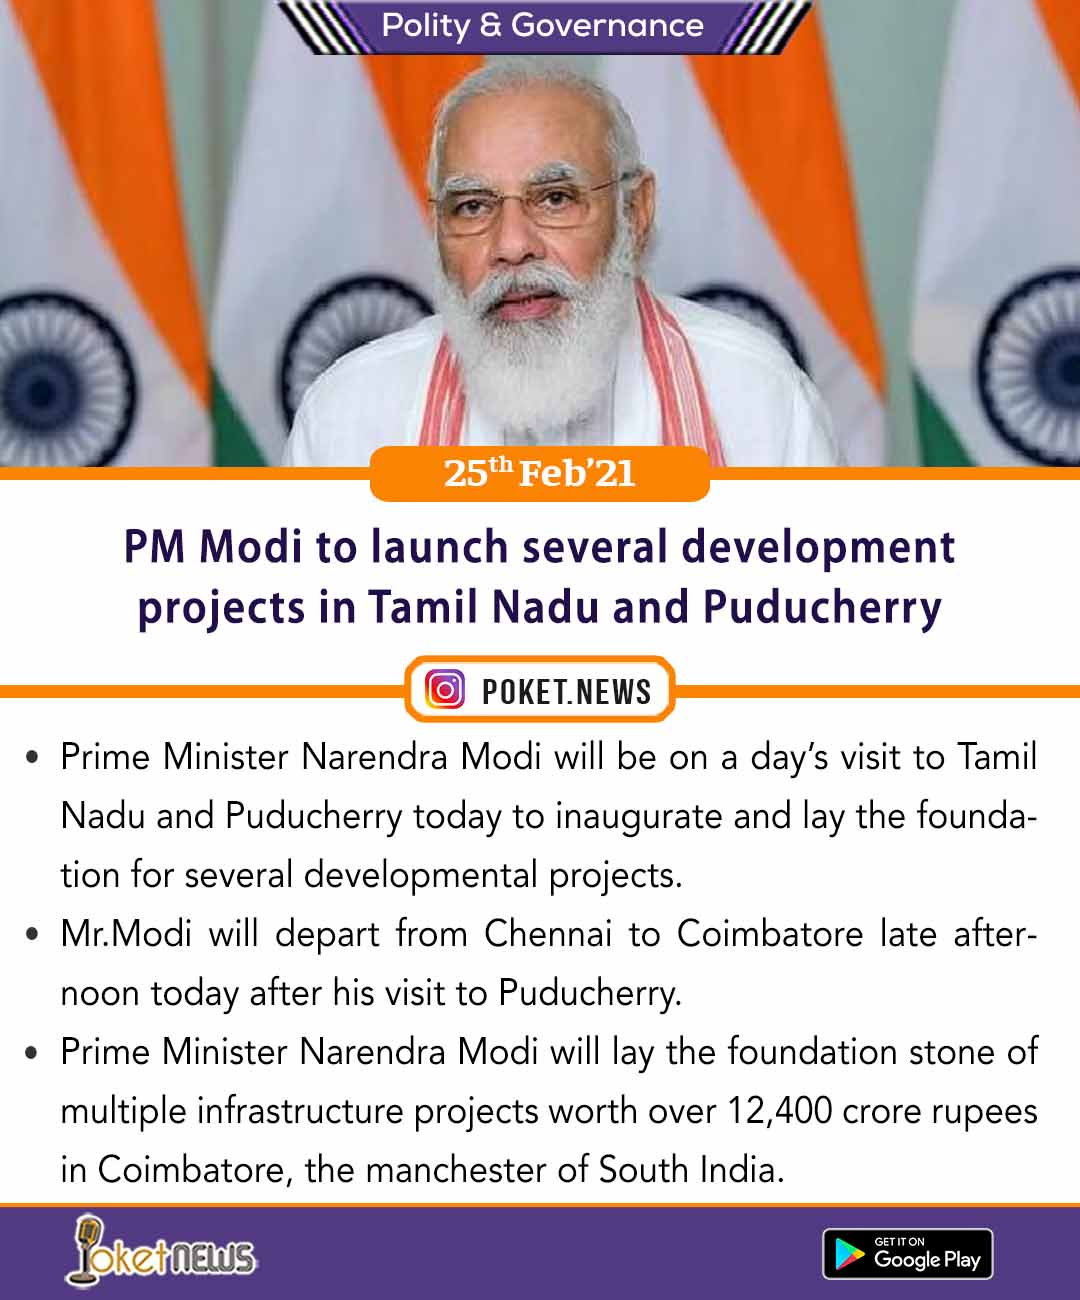 PM Modi to launch several development projects in Tamil Nadu and Puducherry